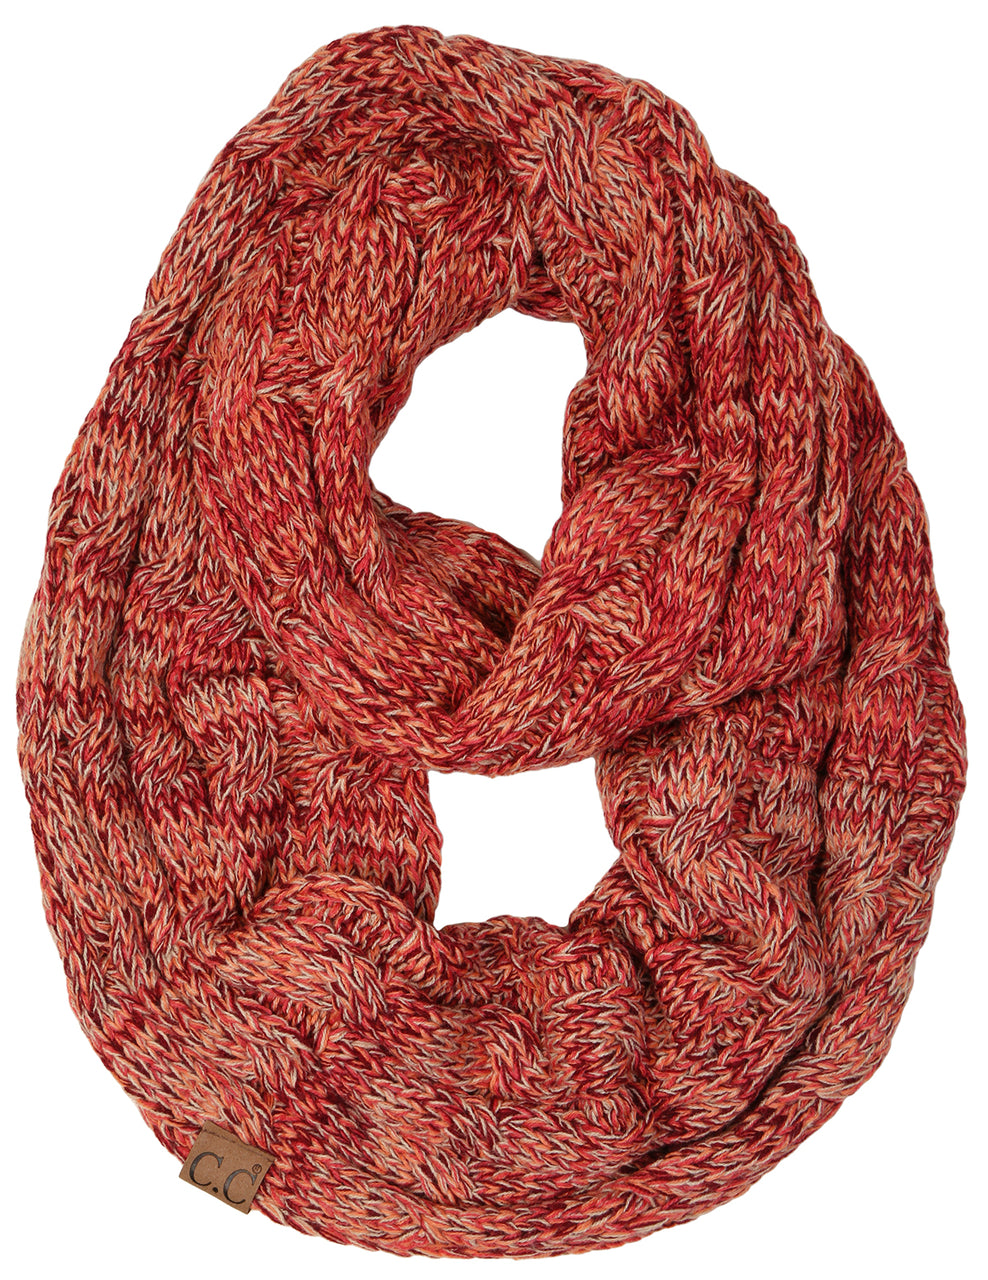 C.C Infinity Scarf - Coral Mix #16